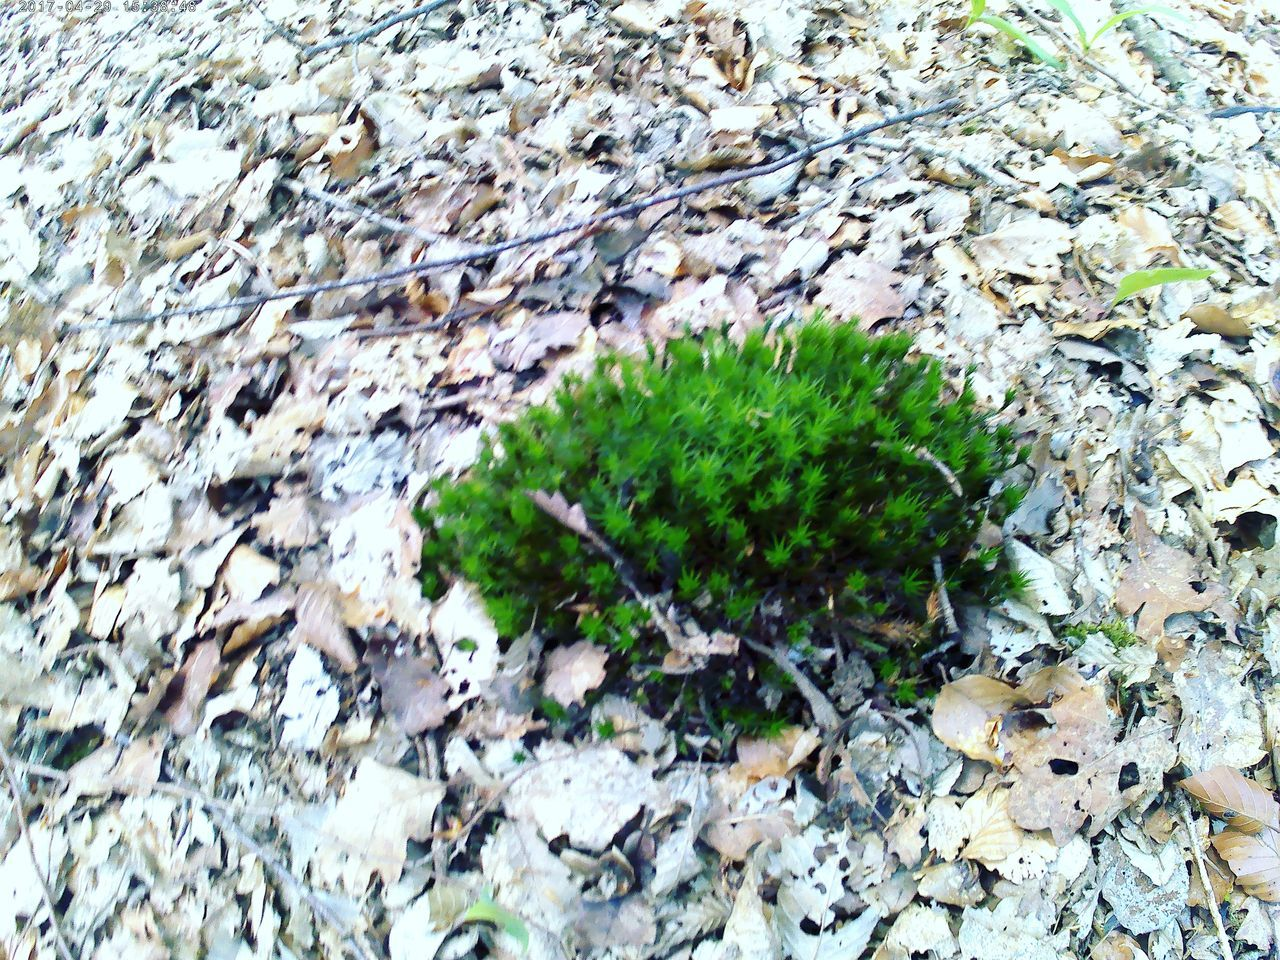 growth, nature, plant, no people, outdoors, close-up, day